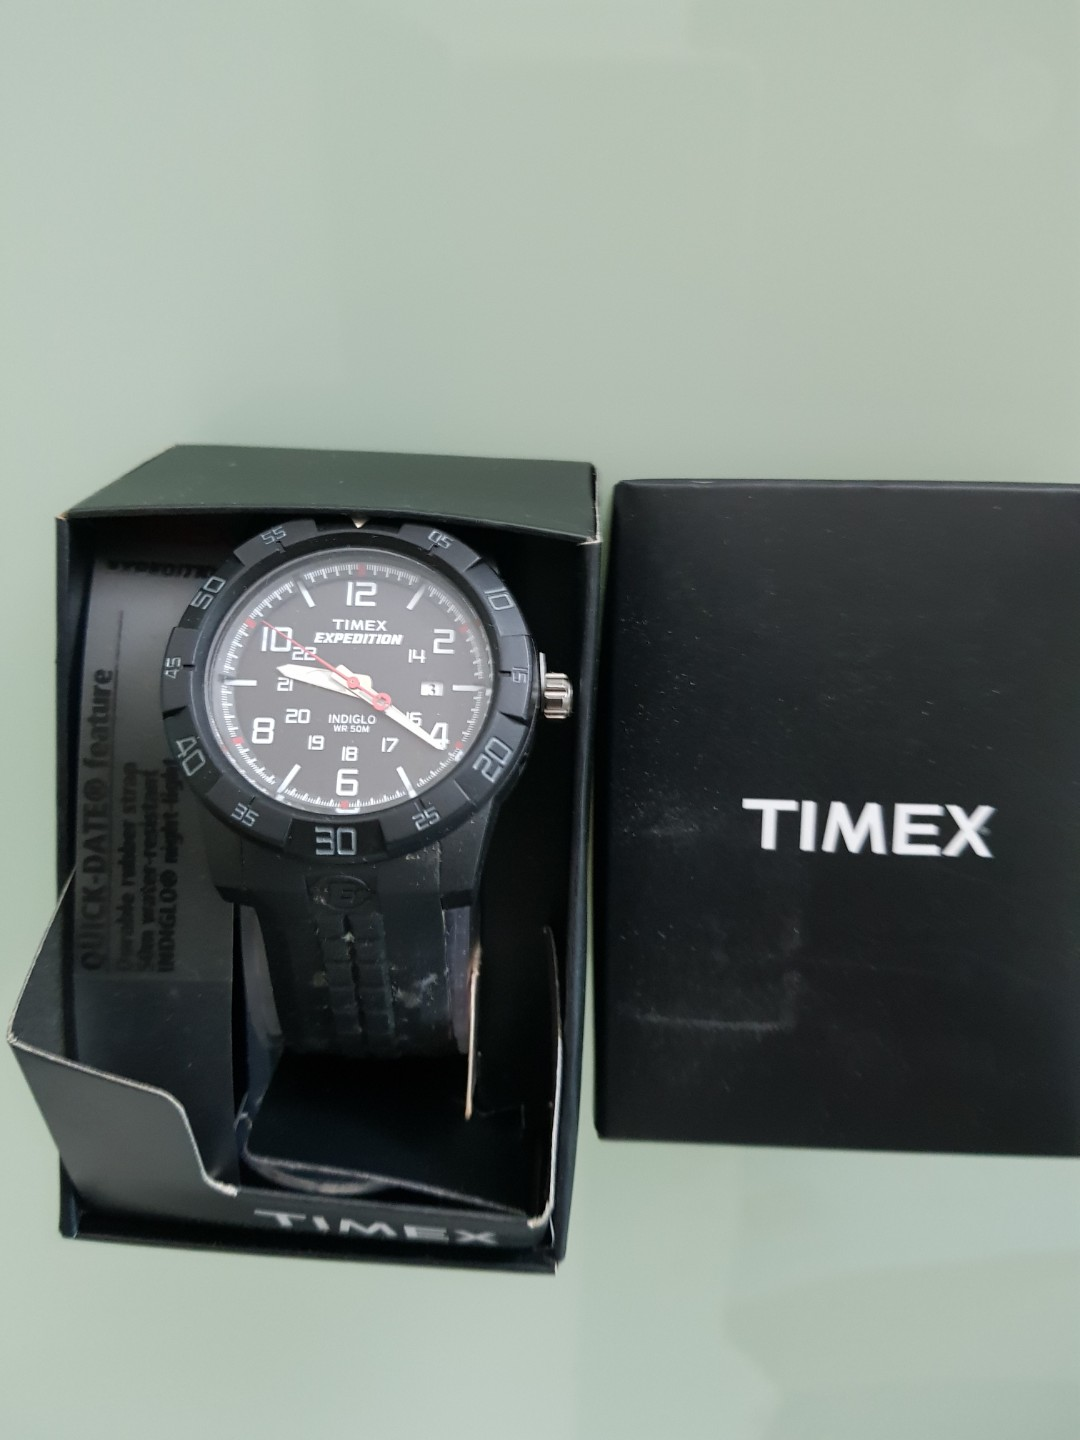 c43e21c49d72 Timex Expedition watch